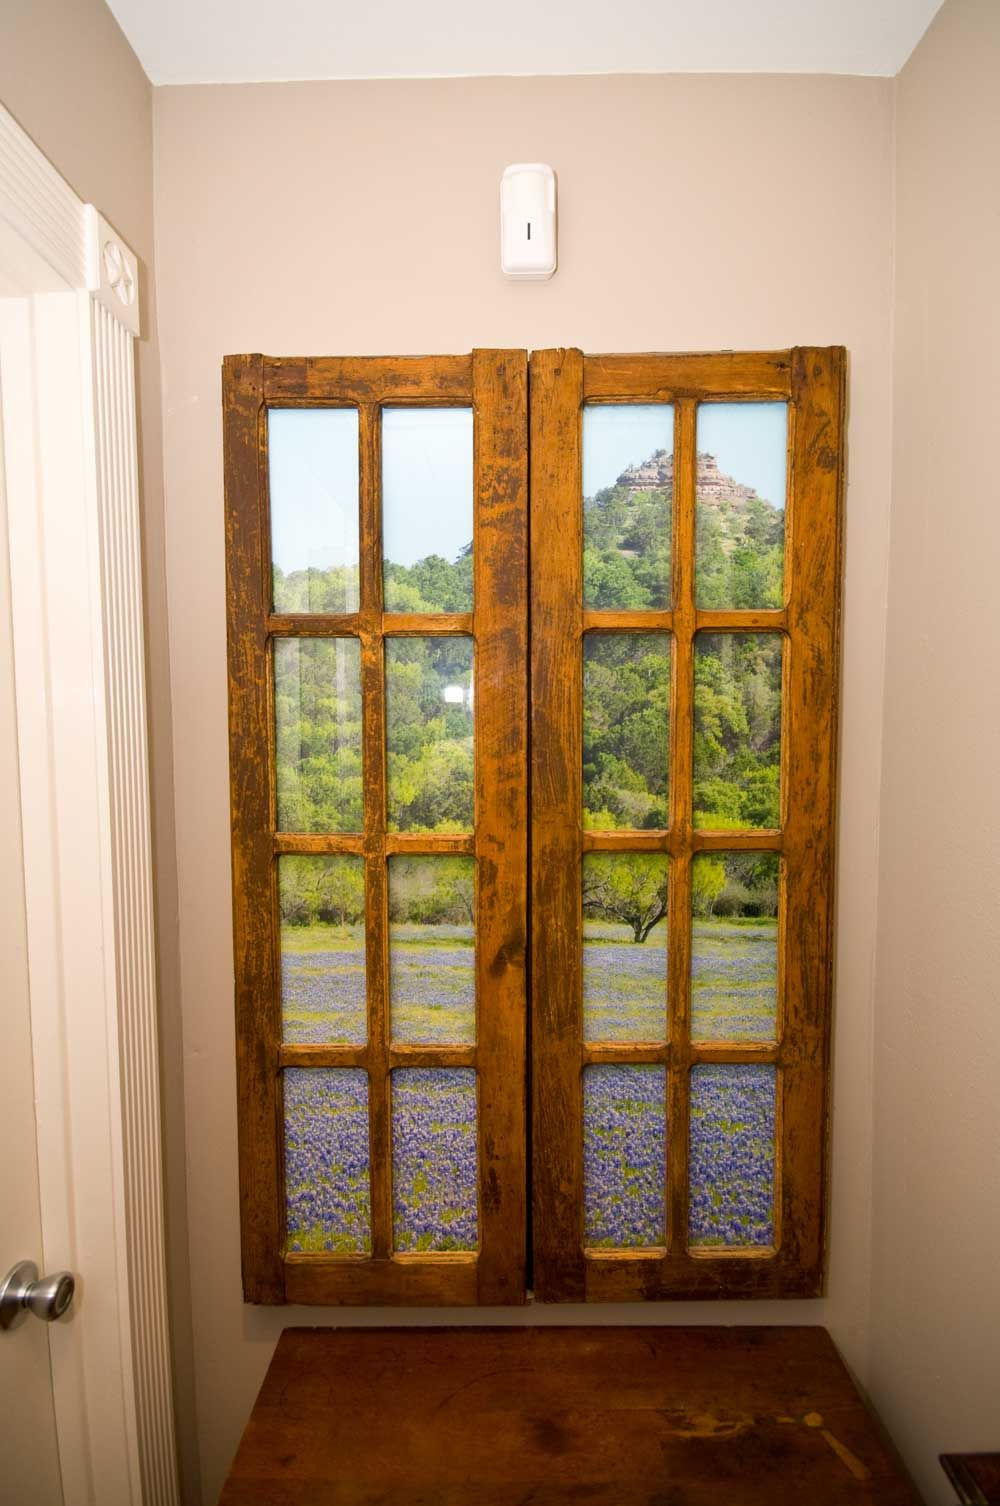 Faux Windows For Windowless Rooms | Faux Window Pictures Throughout Faux Window Wood Wall Mirrors (View 14 of 20)